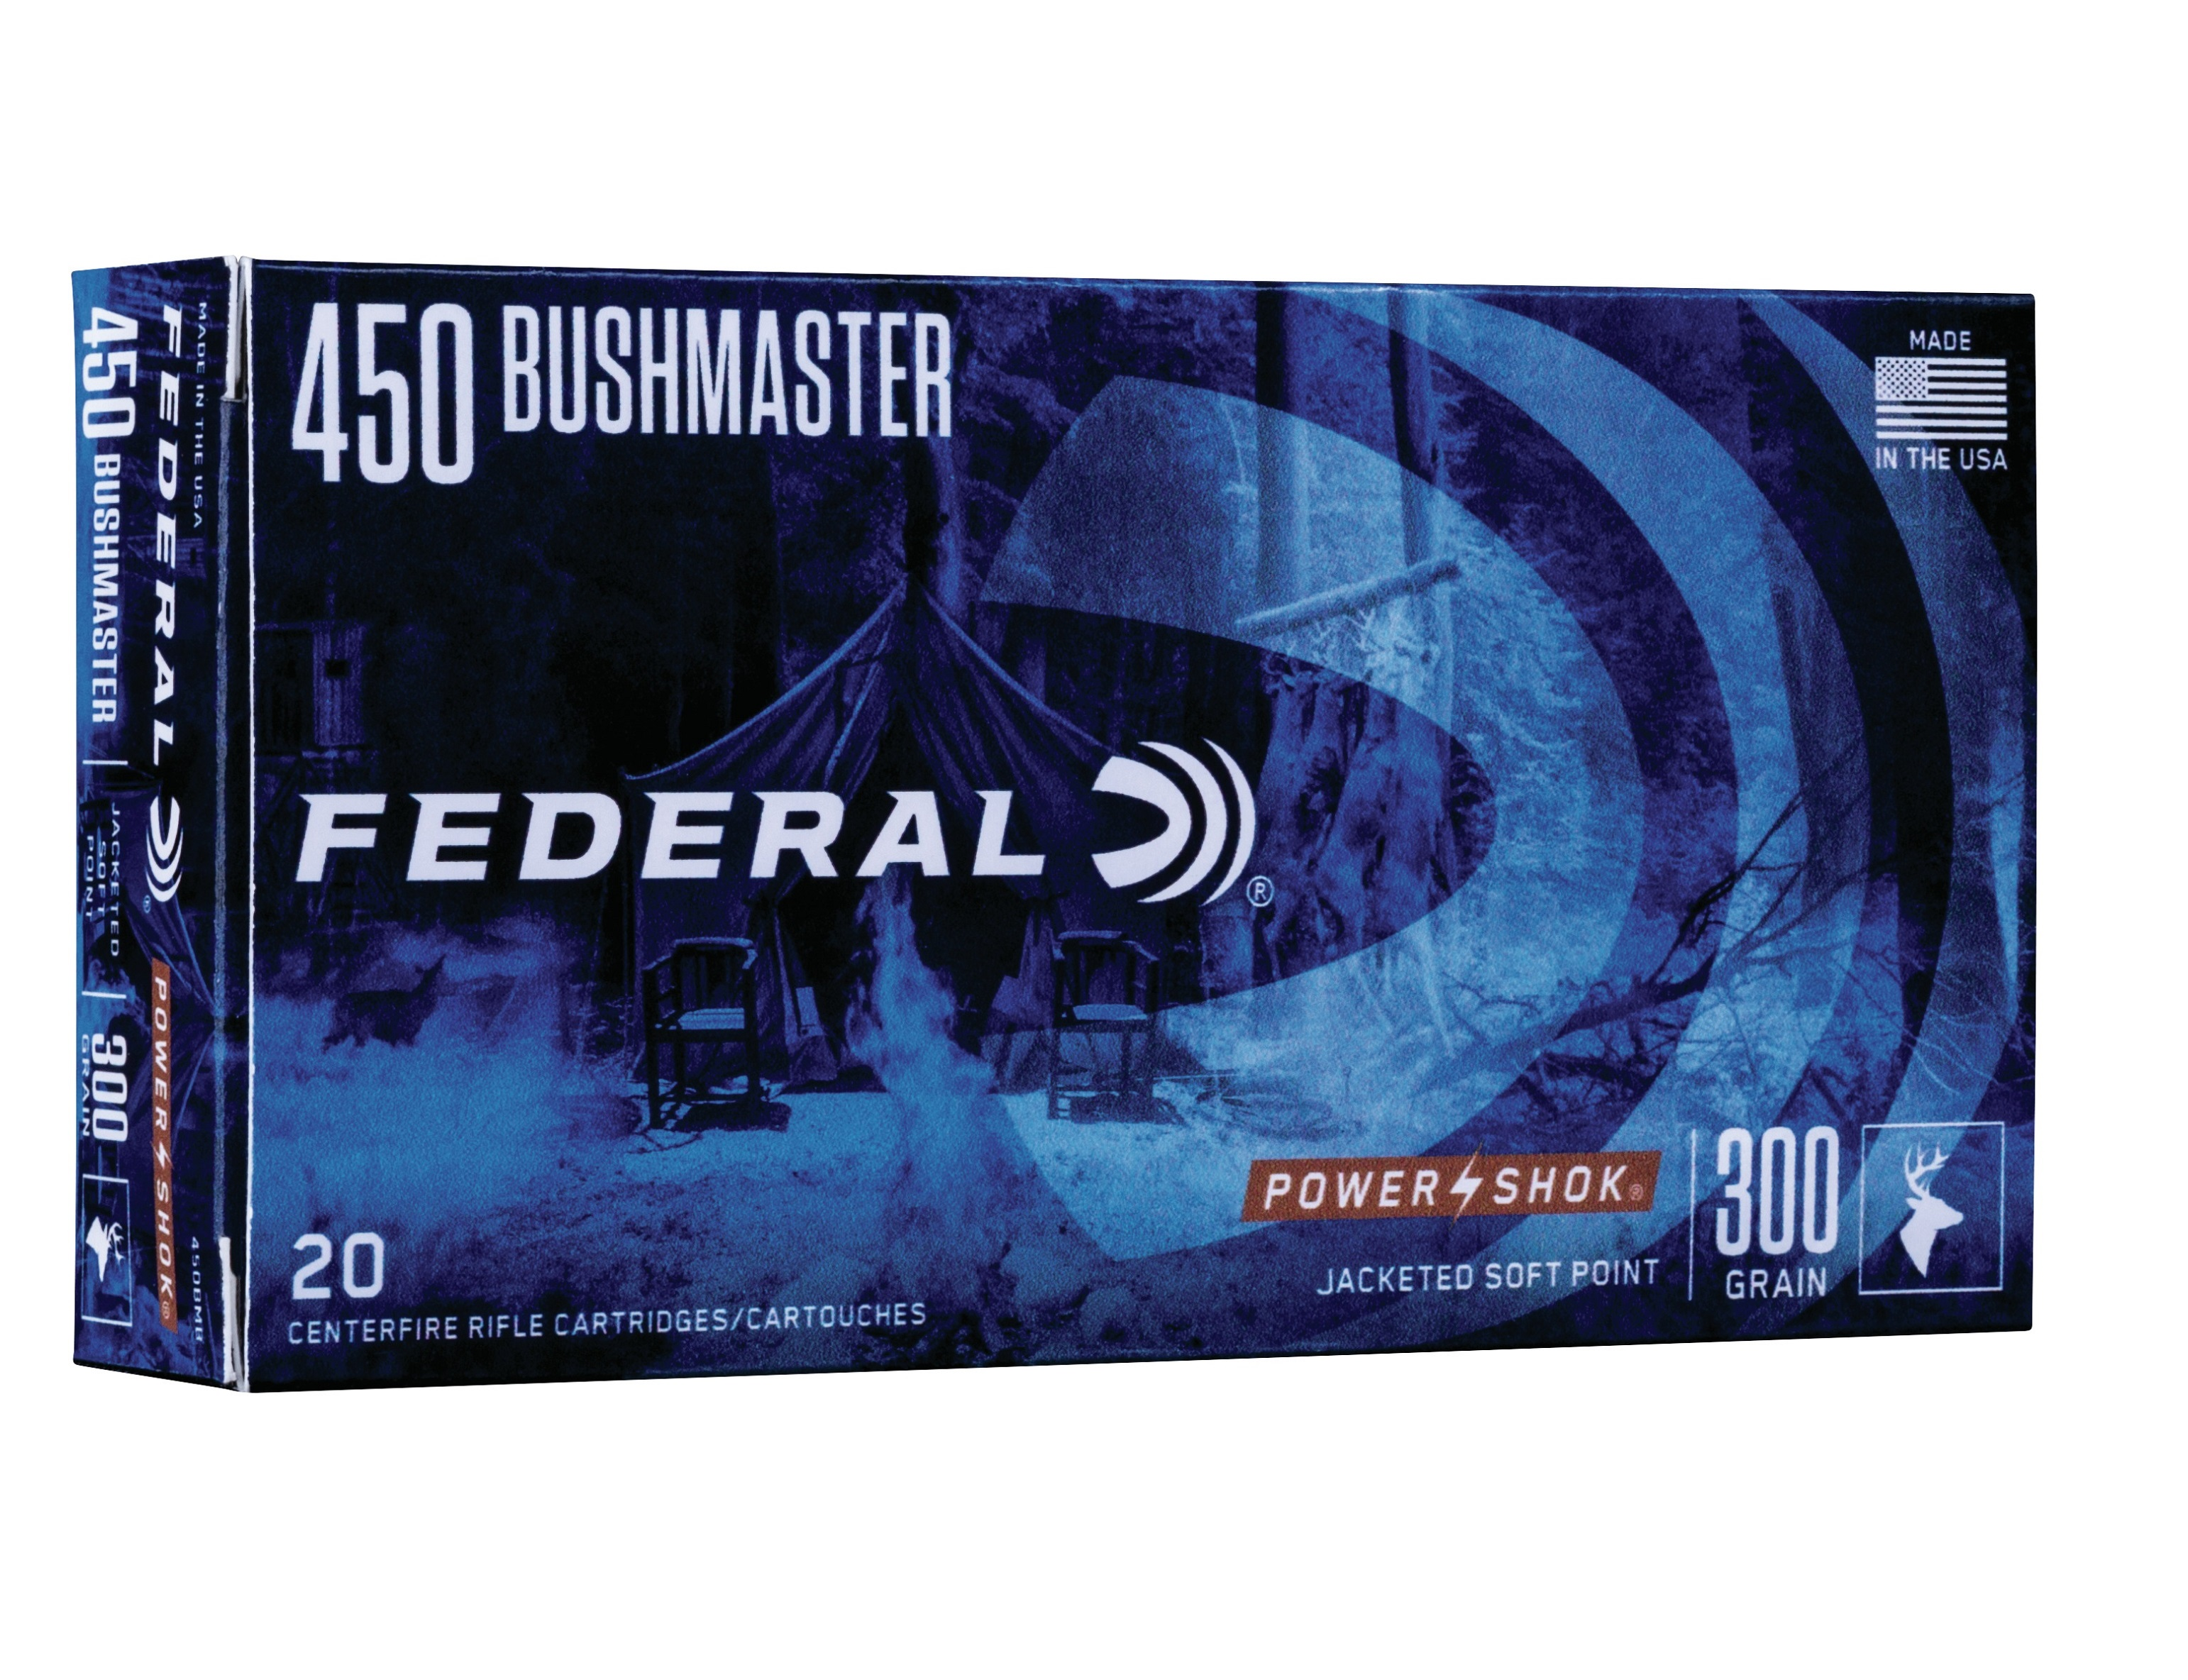 Federal Ammunition Announces New Loads in 450 Bushmaster